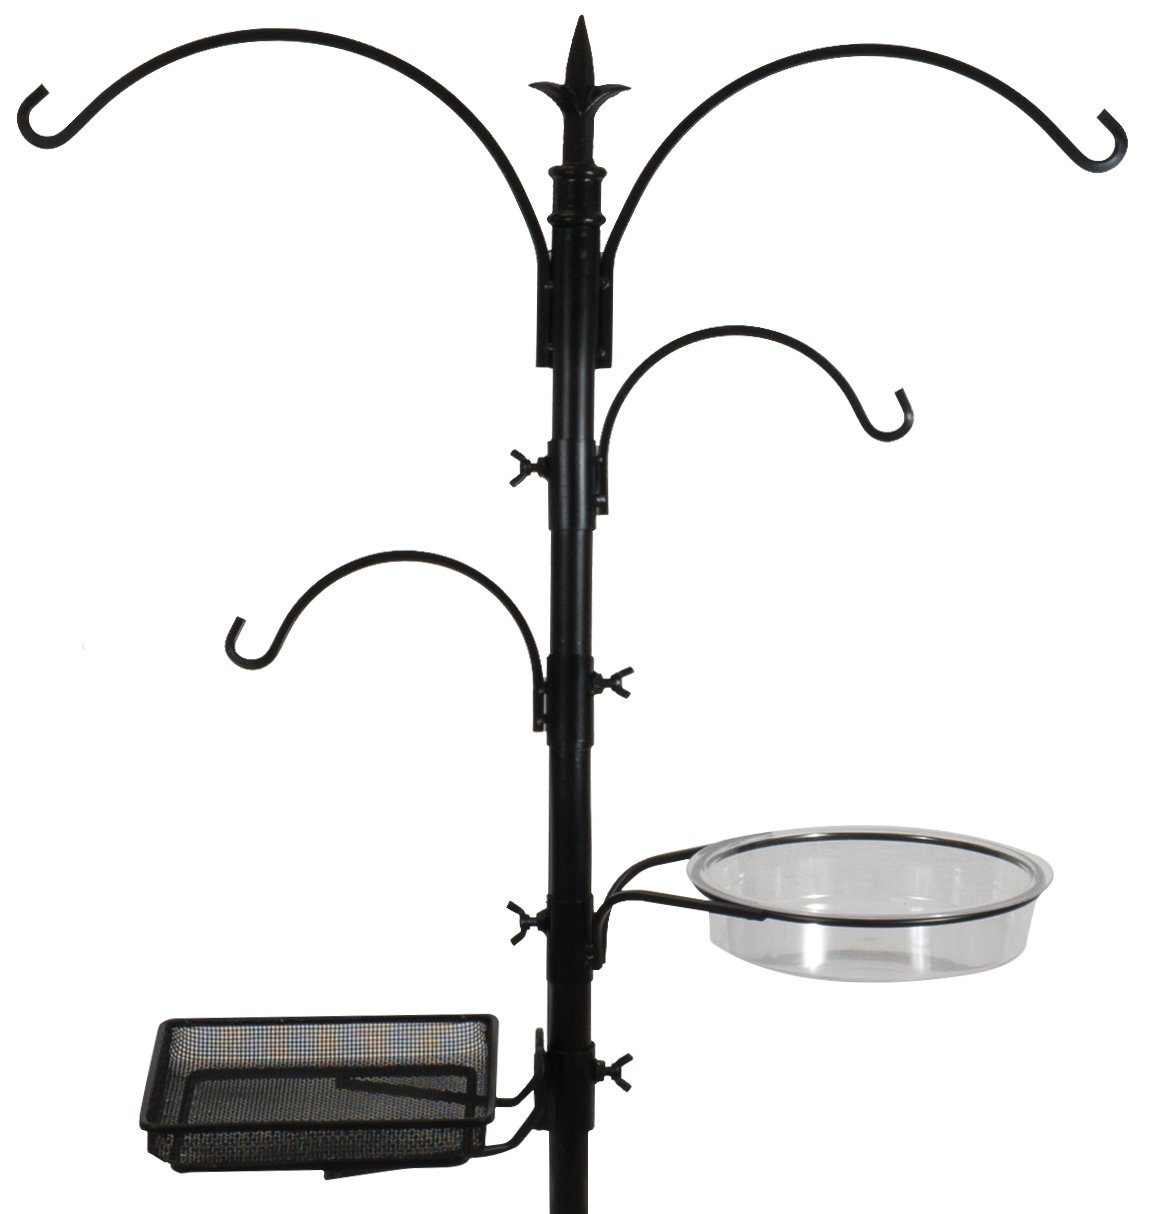 Bird Feeding Bath Station, Metal Deck Pole for Bird Feeders